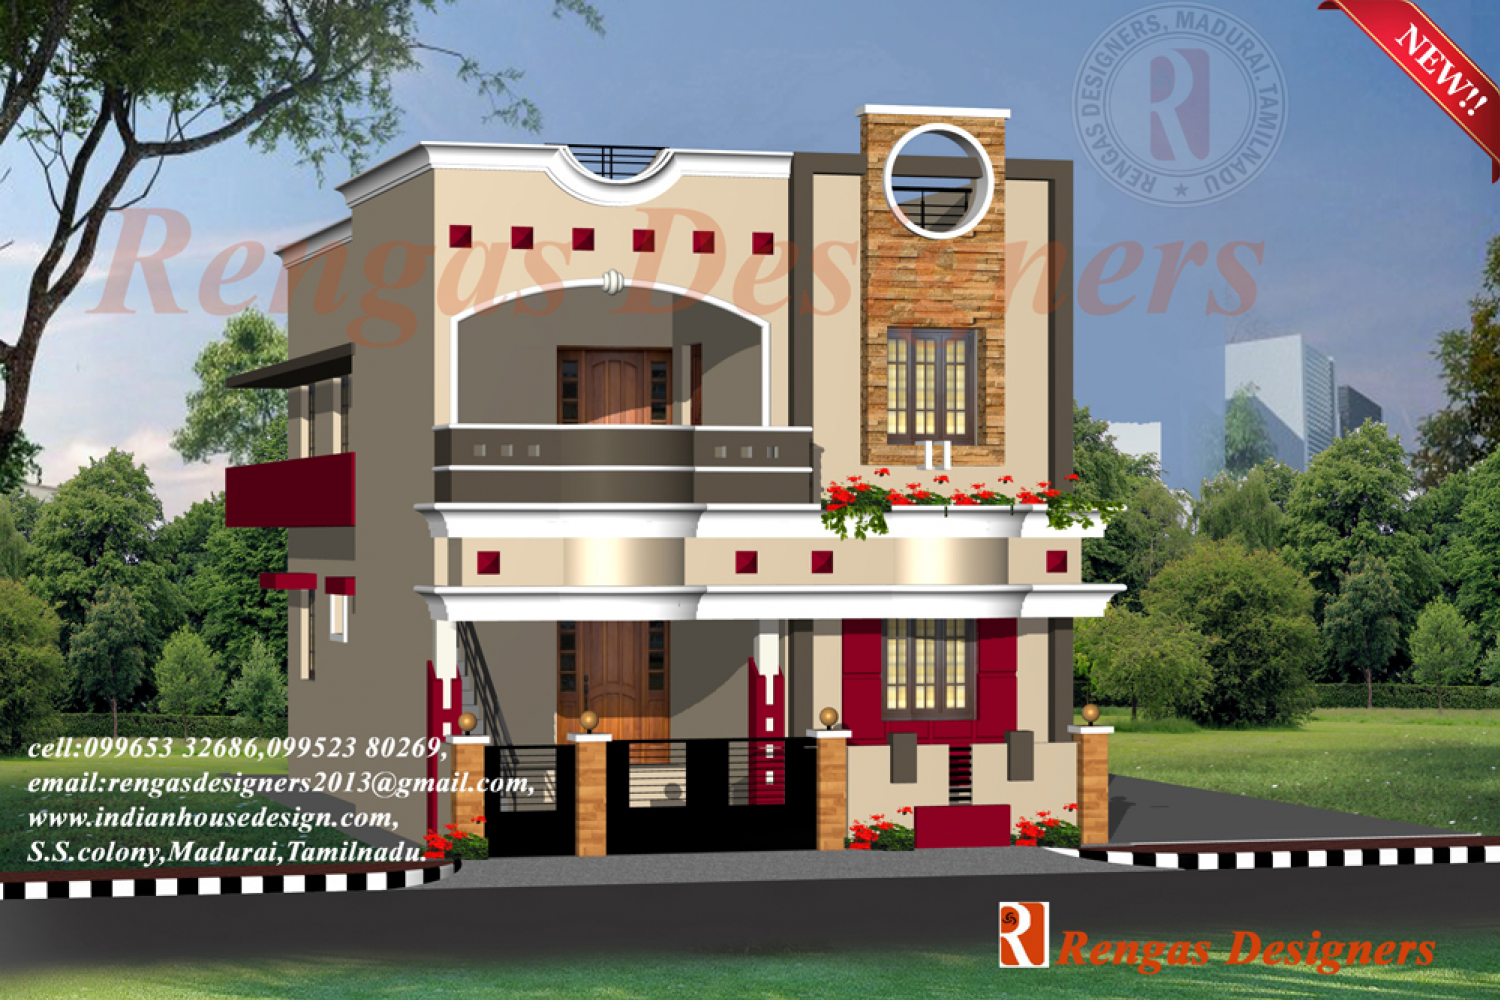 Home Design Photos House Design Indian House Design New Home Designs Indian  Small House625 X 564 82 Kb Jpeg X | My Dream House | Pinterest | Indian  House ... Amazing Design